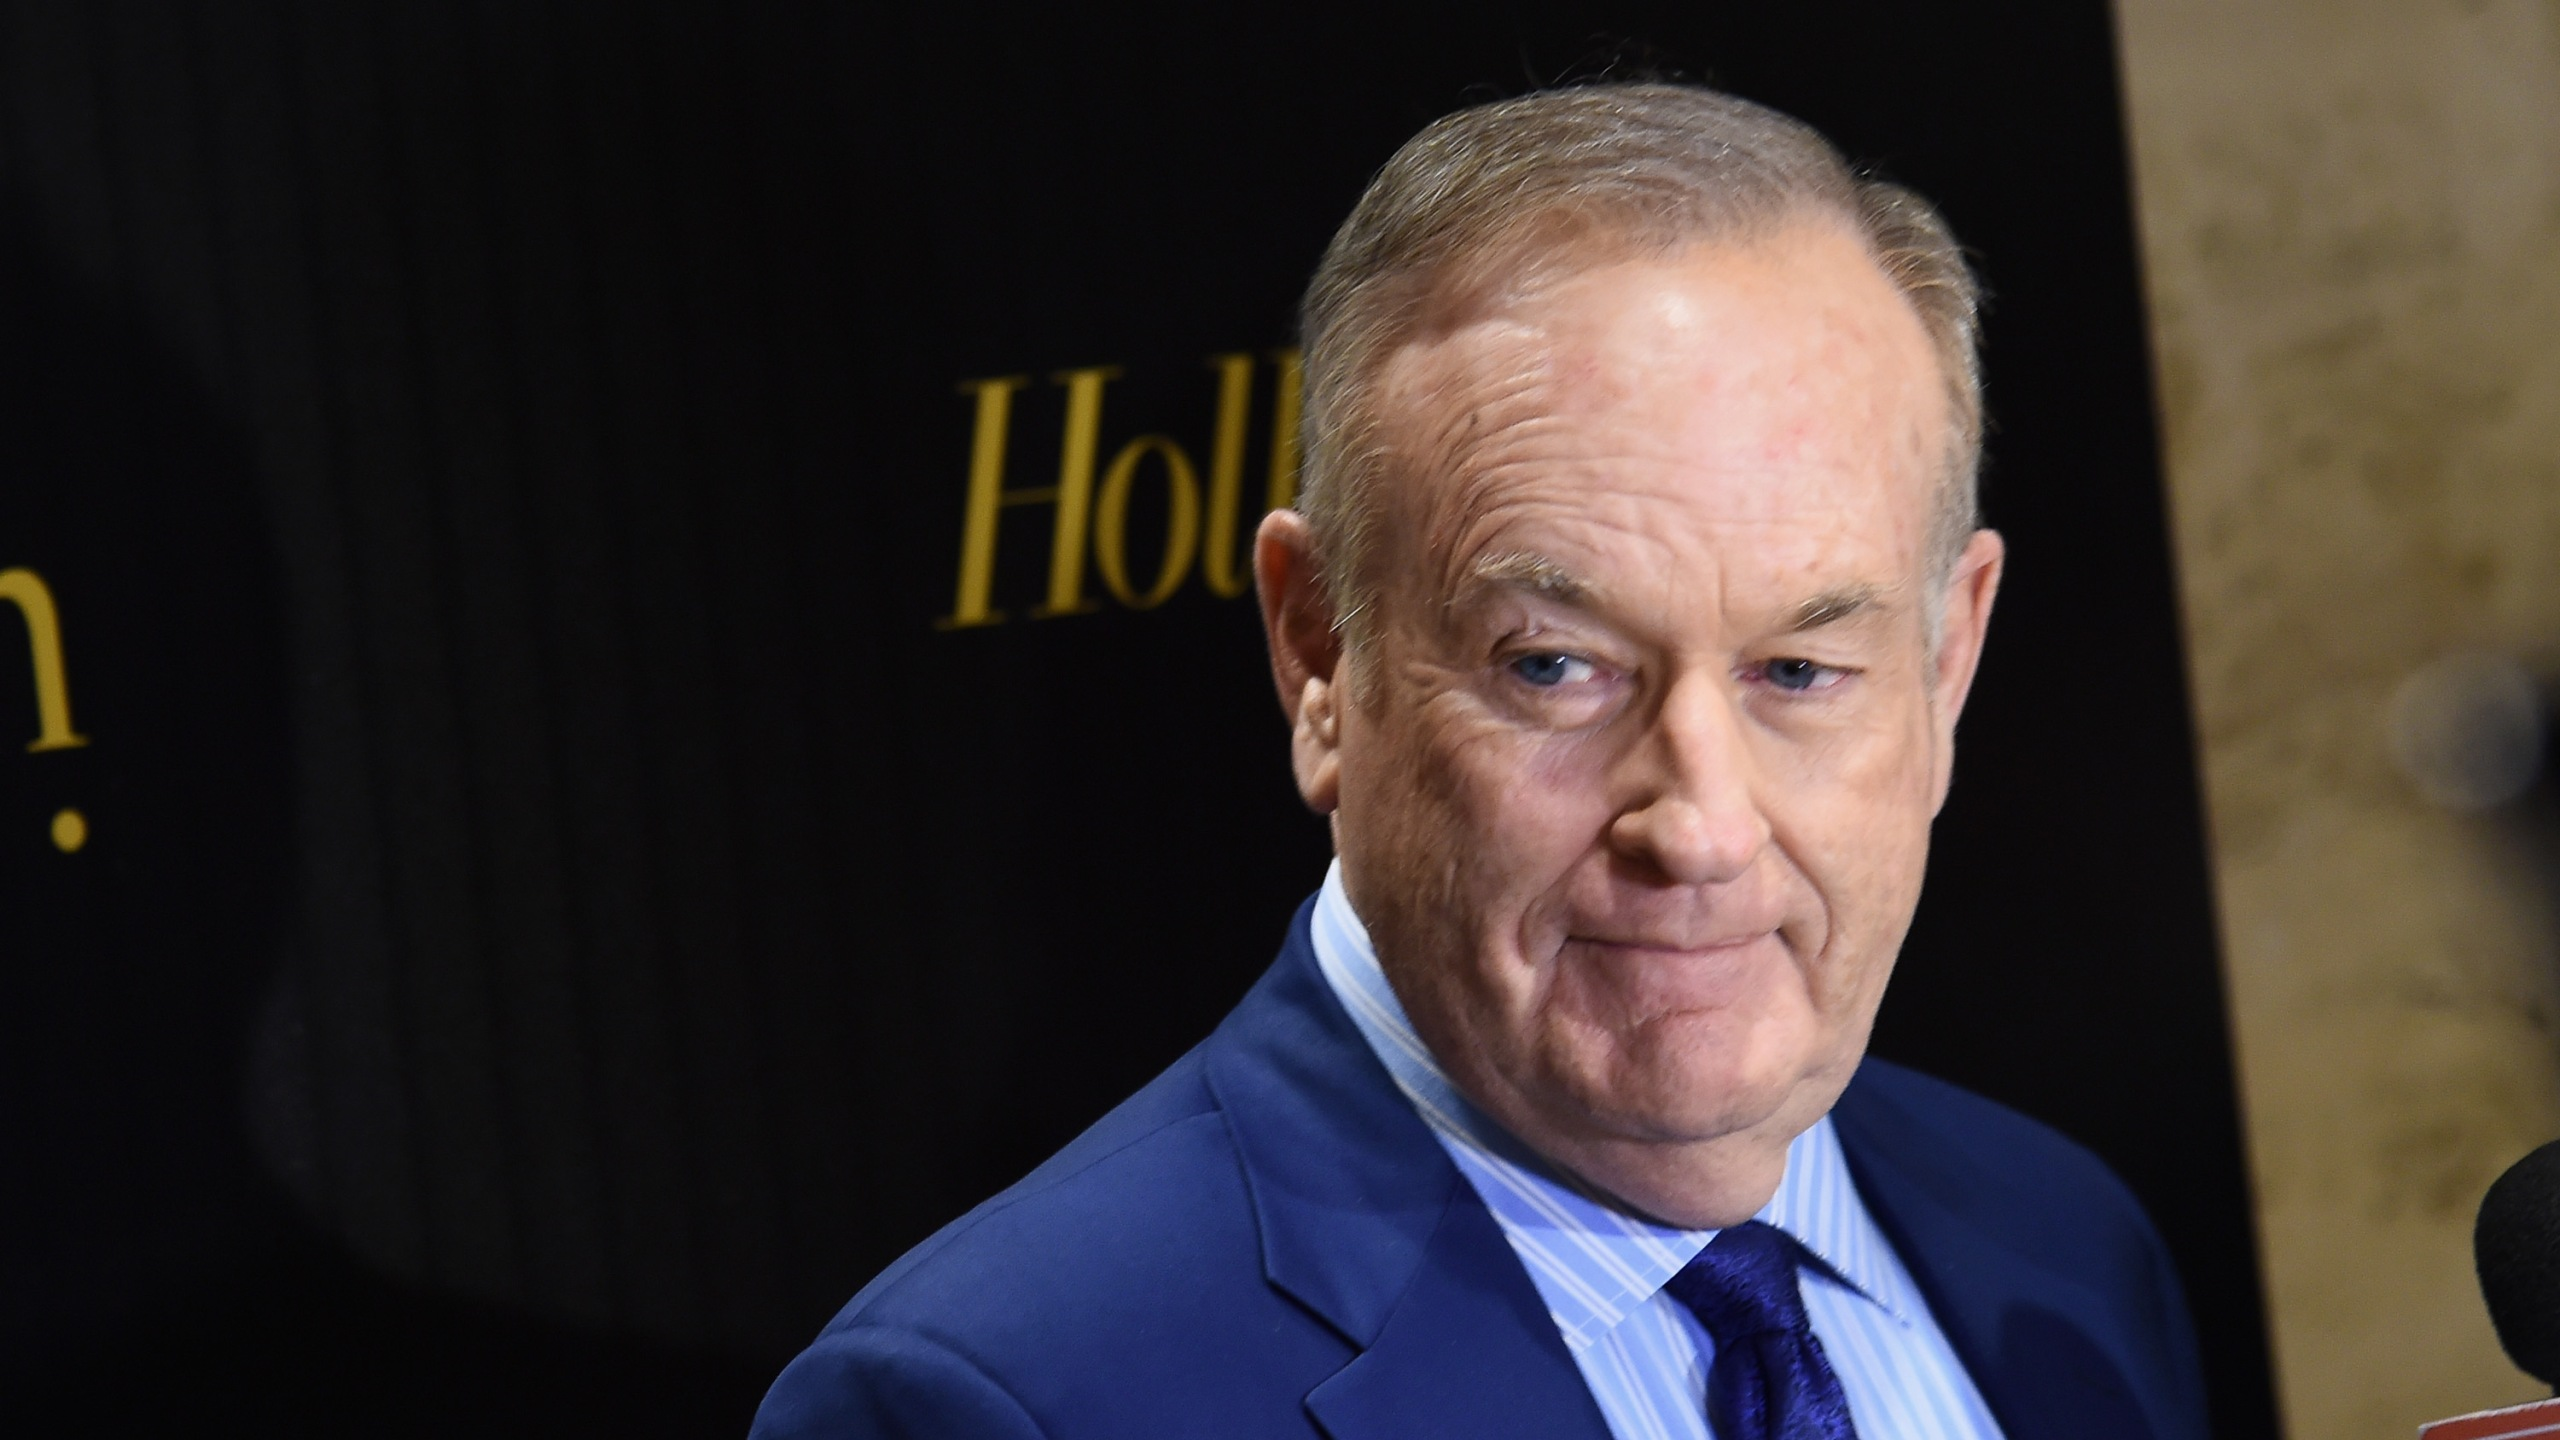 Television host Bill O'Reilly attends the Hollywood Reporter's 2016 35 Most Powerful People in Media at Four Seasons Restaurant on April 6, 2016 in New York City. (Credit: Photo by Ilya S. Savenok/Getty Images)